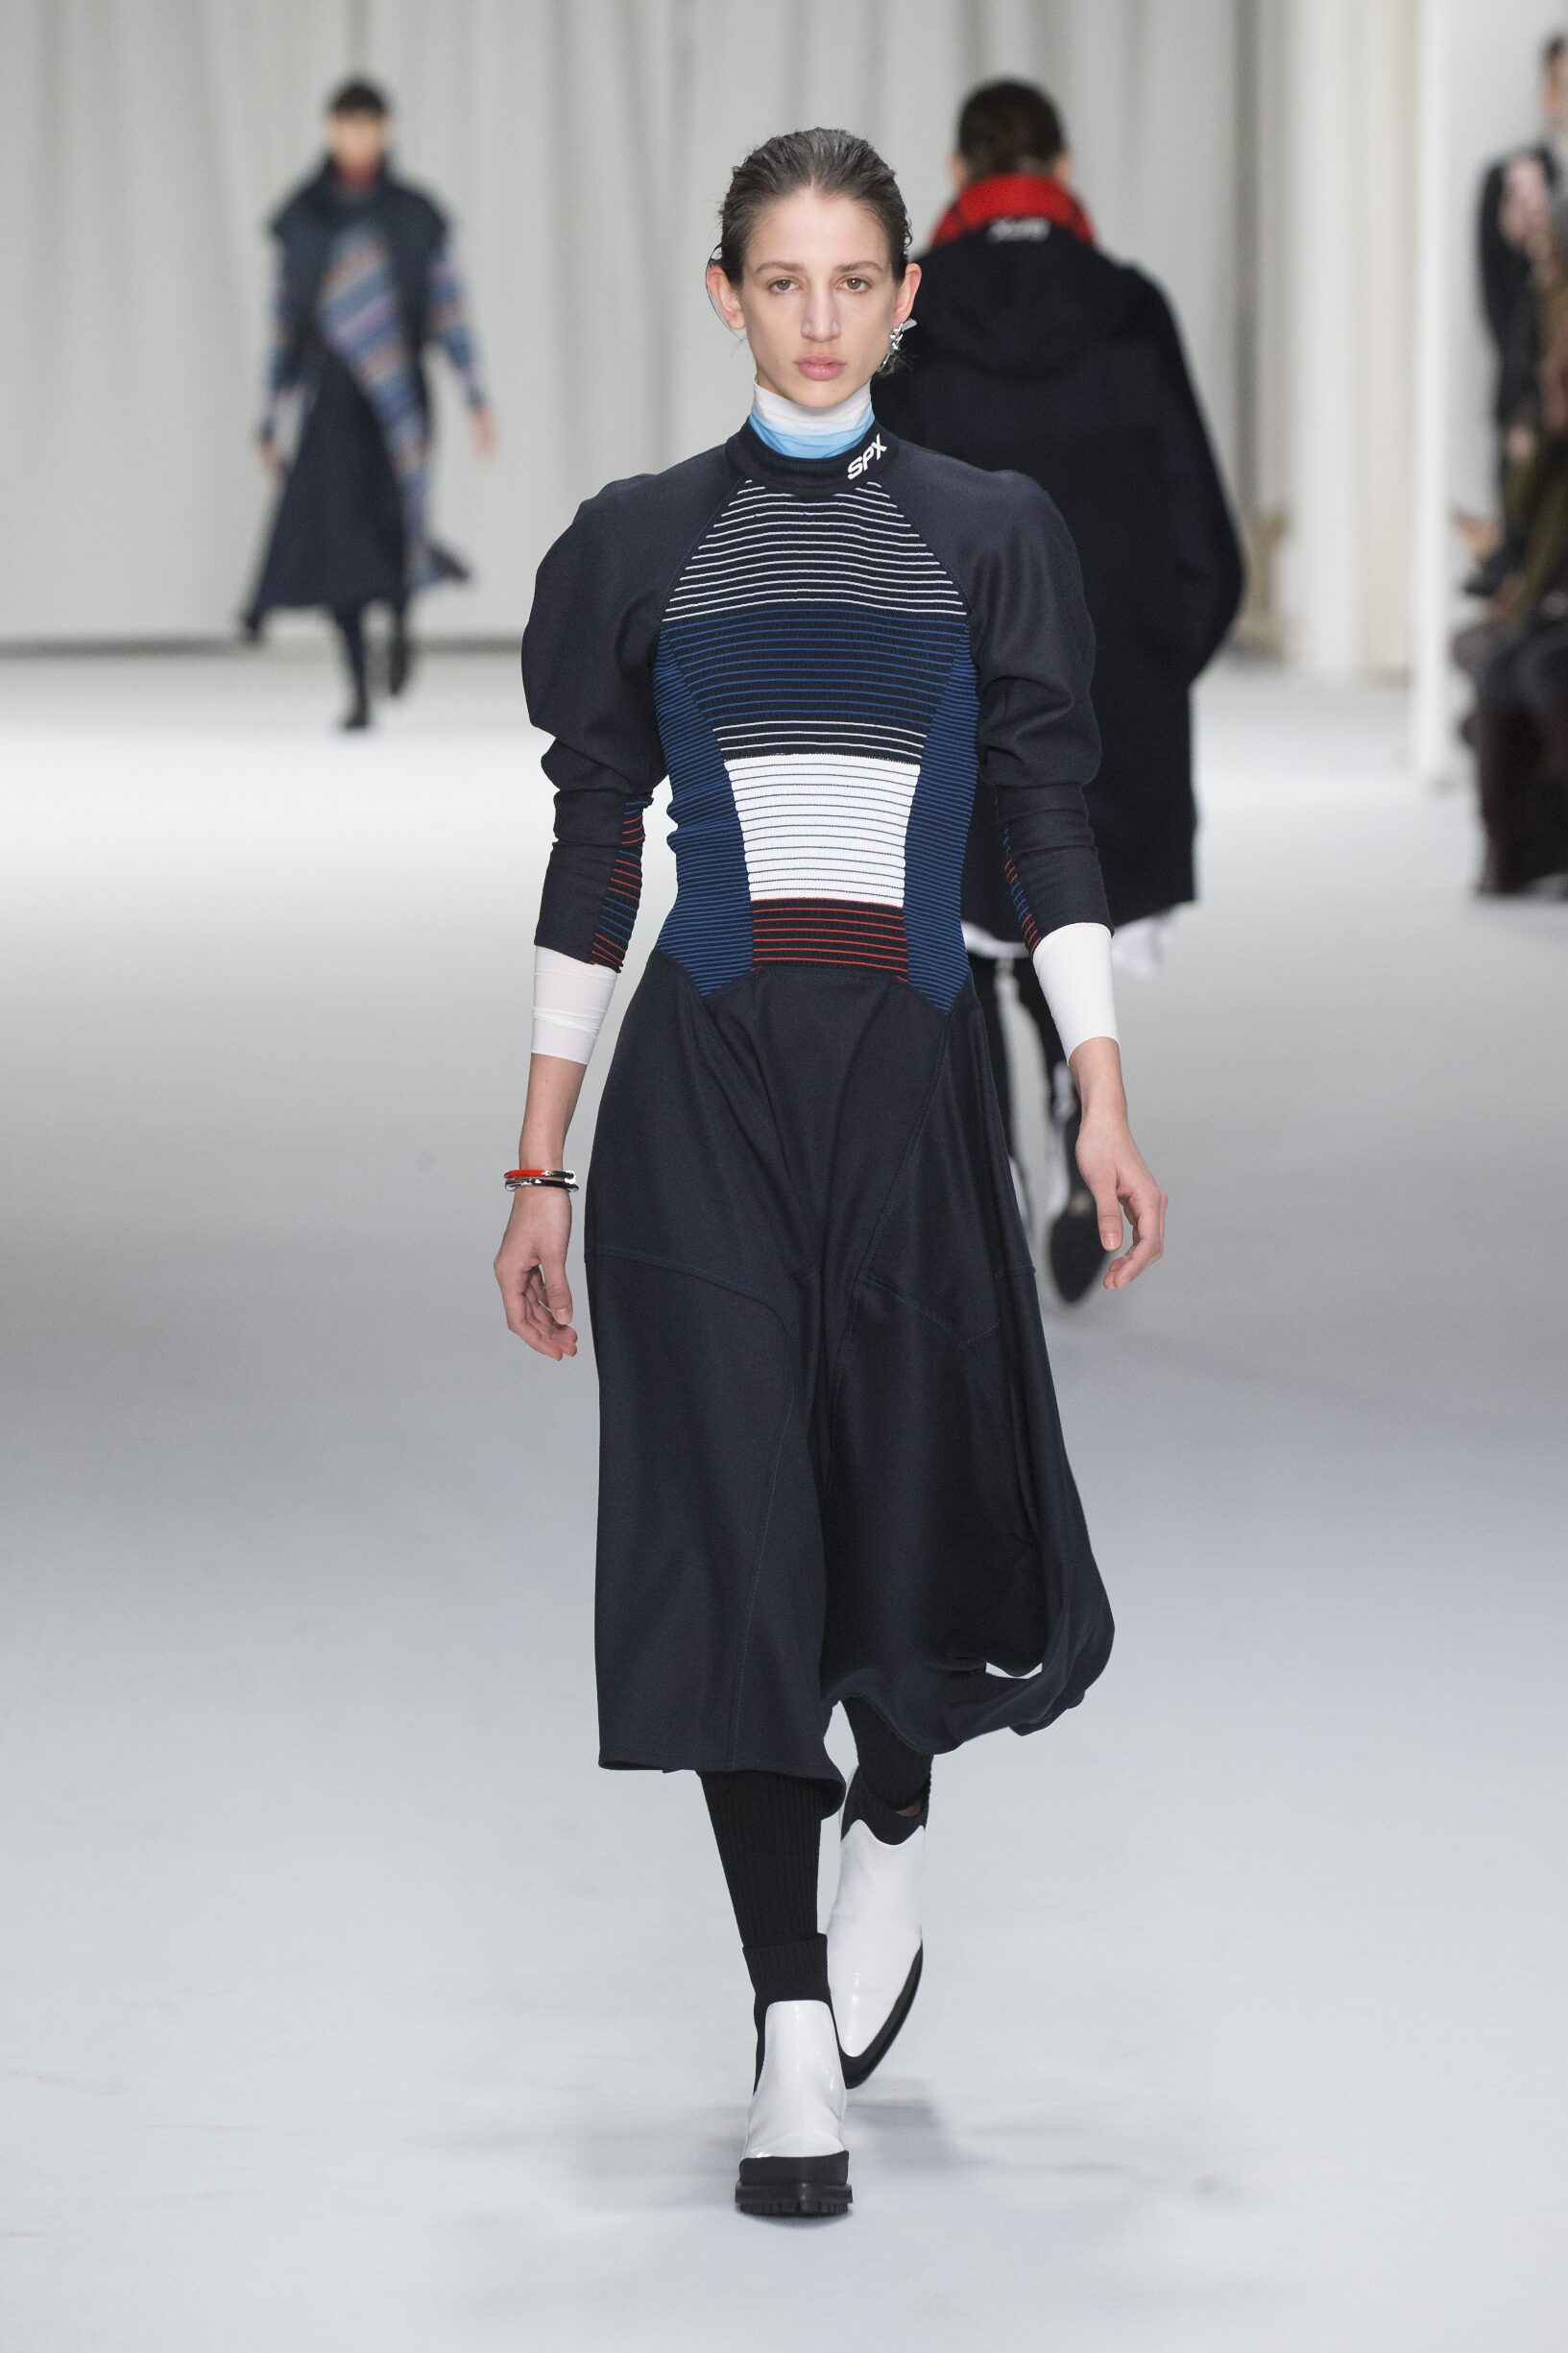 Woman FW 2018-19 Fashion Show Sportmax